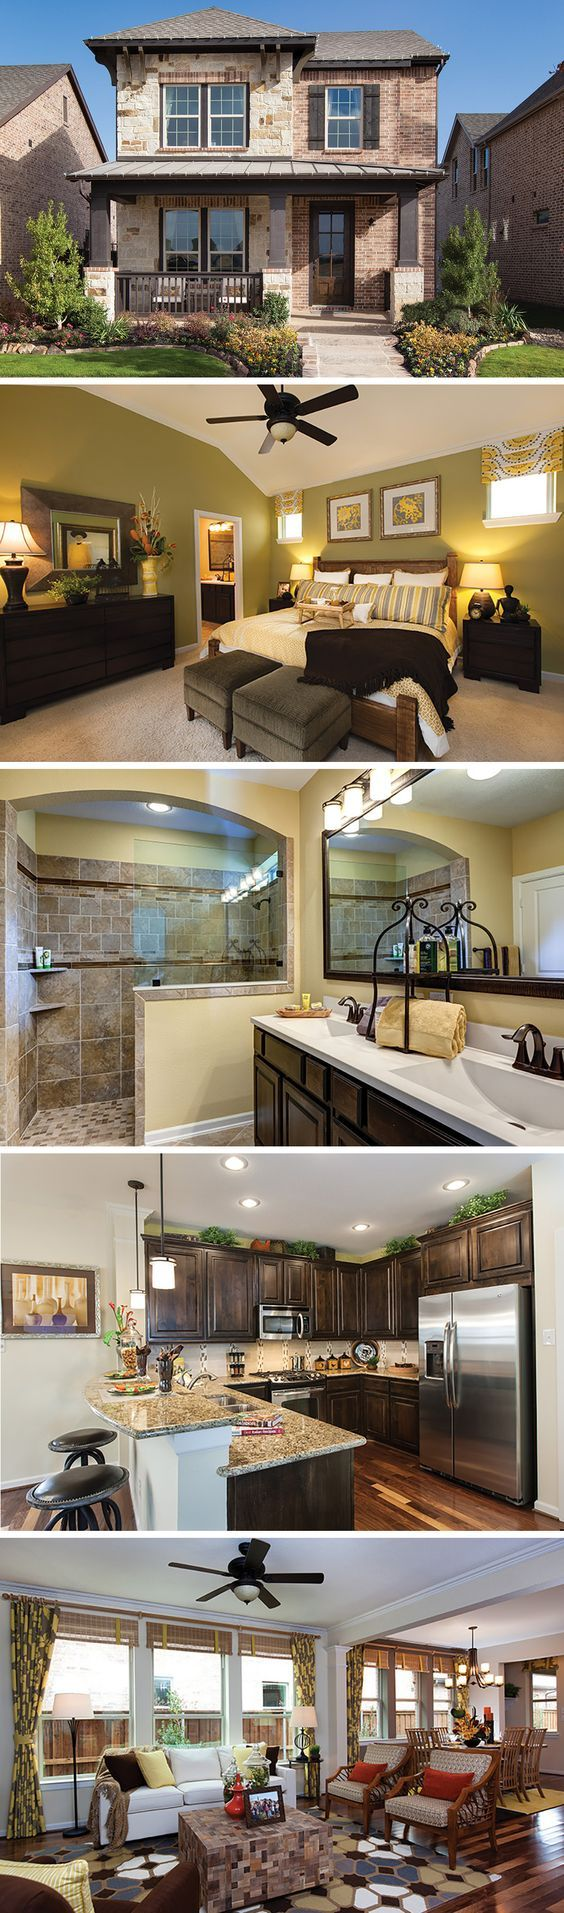 The  Grayton by David Weekley Homes in Viridian Cottage is a 4 bedroom 2 bath home that features a large open kitchen and family room, private covered porch and a large walk-in closet in the owners retreat. Custom home options include a fireplace in the family room, built-in desk cabinets and a larger shower in the owners retreat.